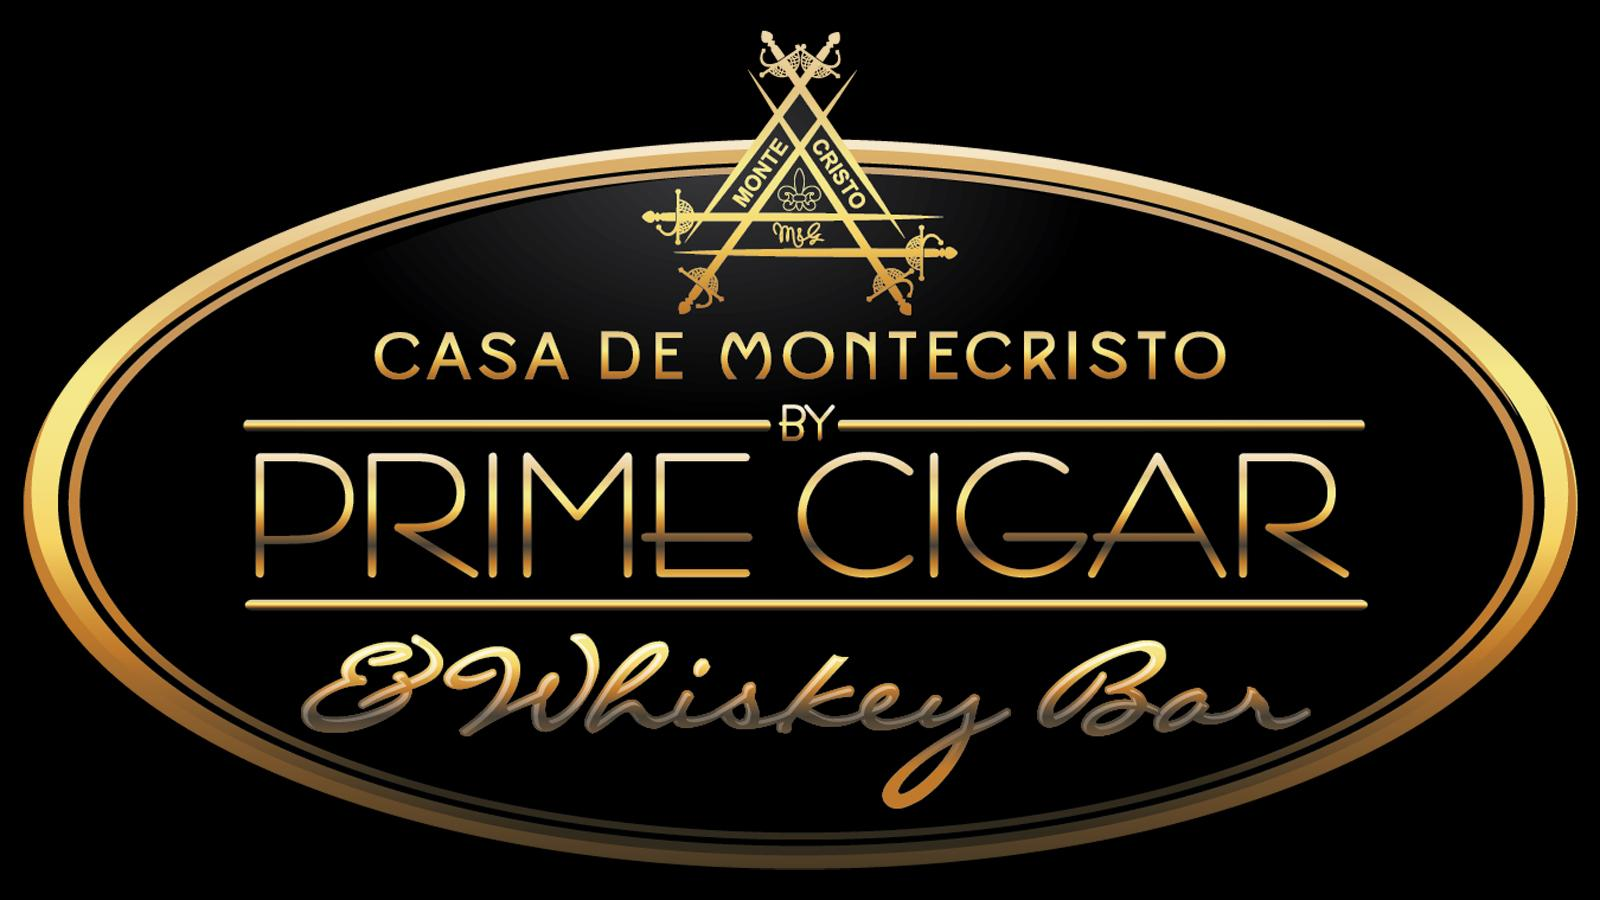 Casa De Montecristo Coming To Miami in 2016